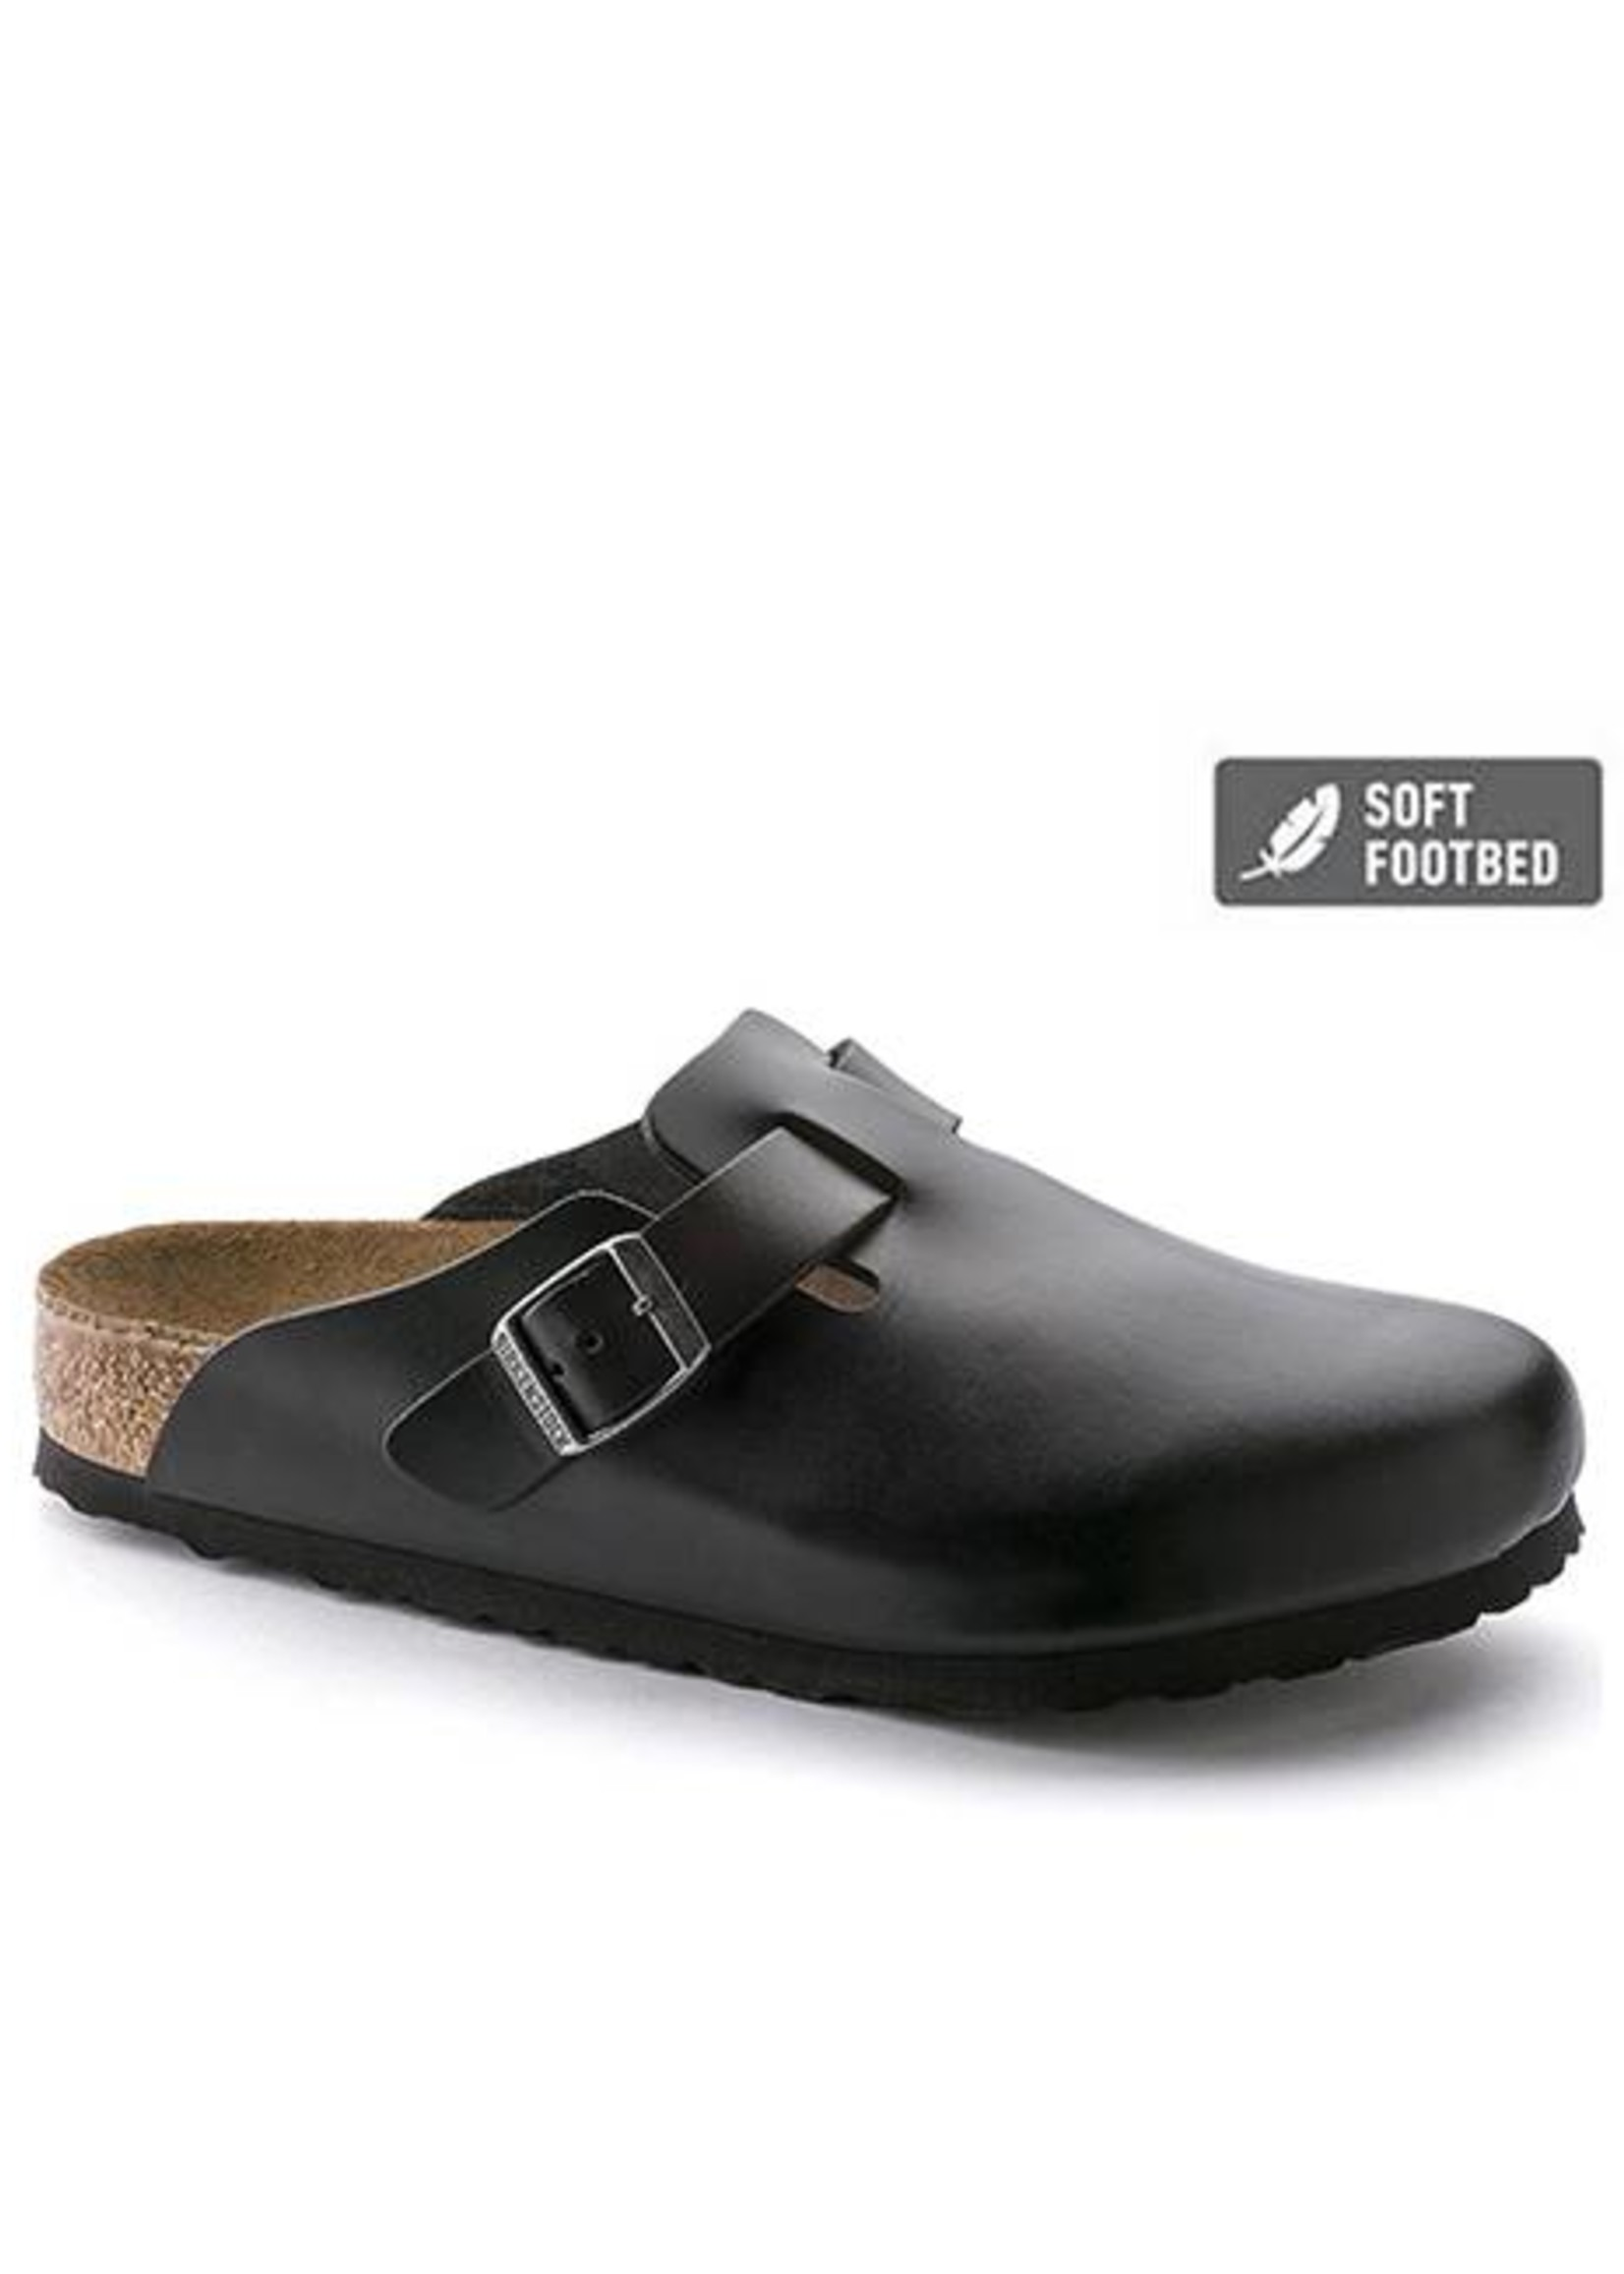 Birkenstock Boston - Smooth Leather in Black (Soft Footbed)